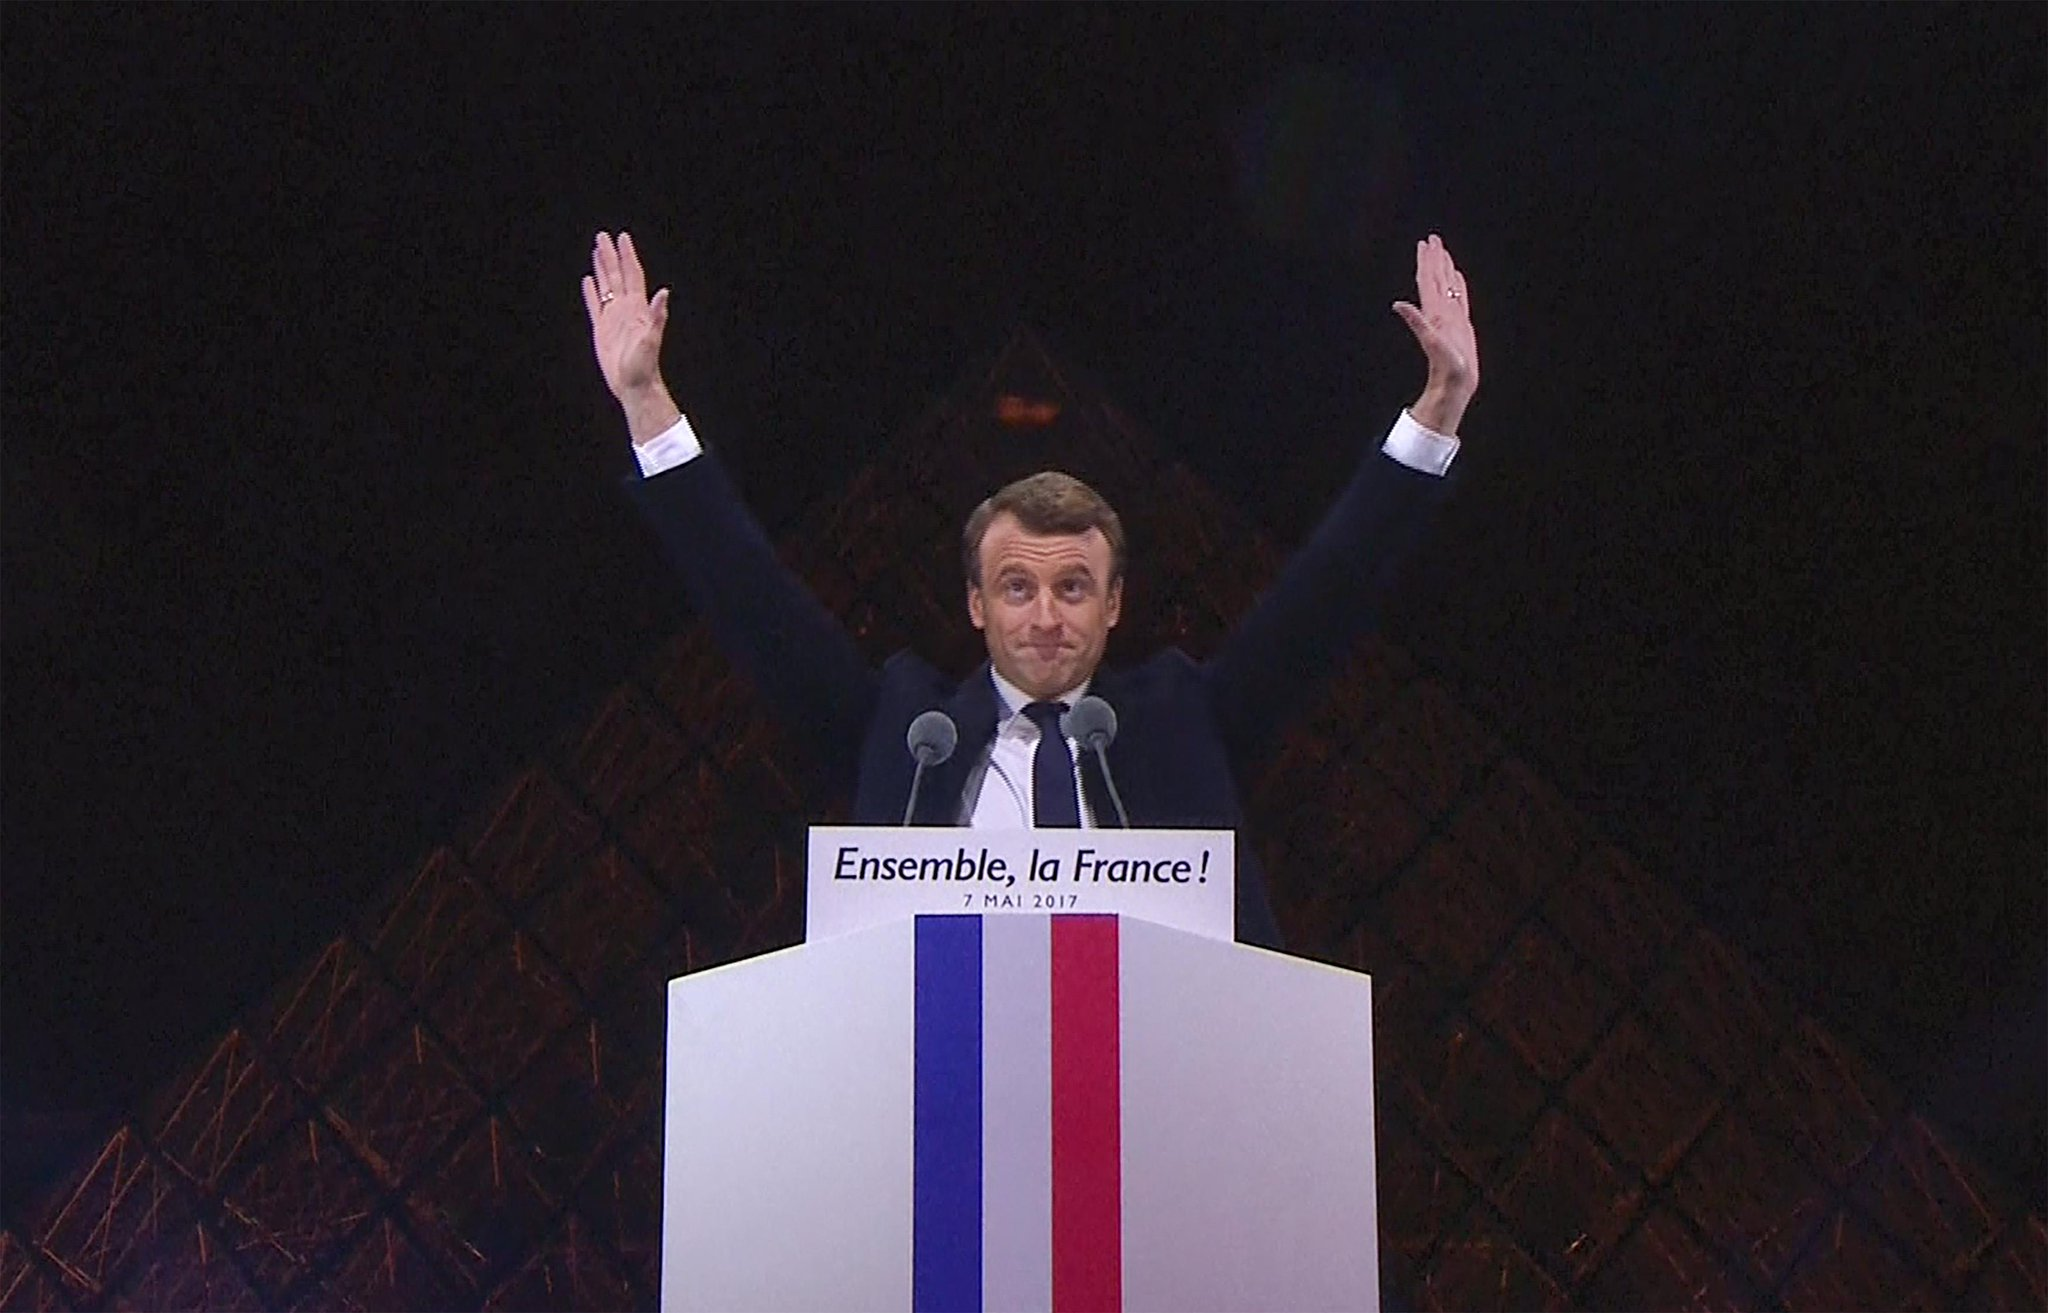 "Strong words from President Macron: ""We won't give in to fear, to divisions, to lies"". Civil society will watch & remind him of his promise https://t.co/SDxB7piFXY"